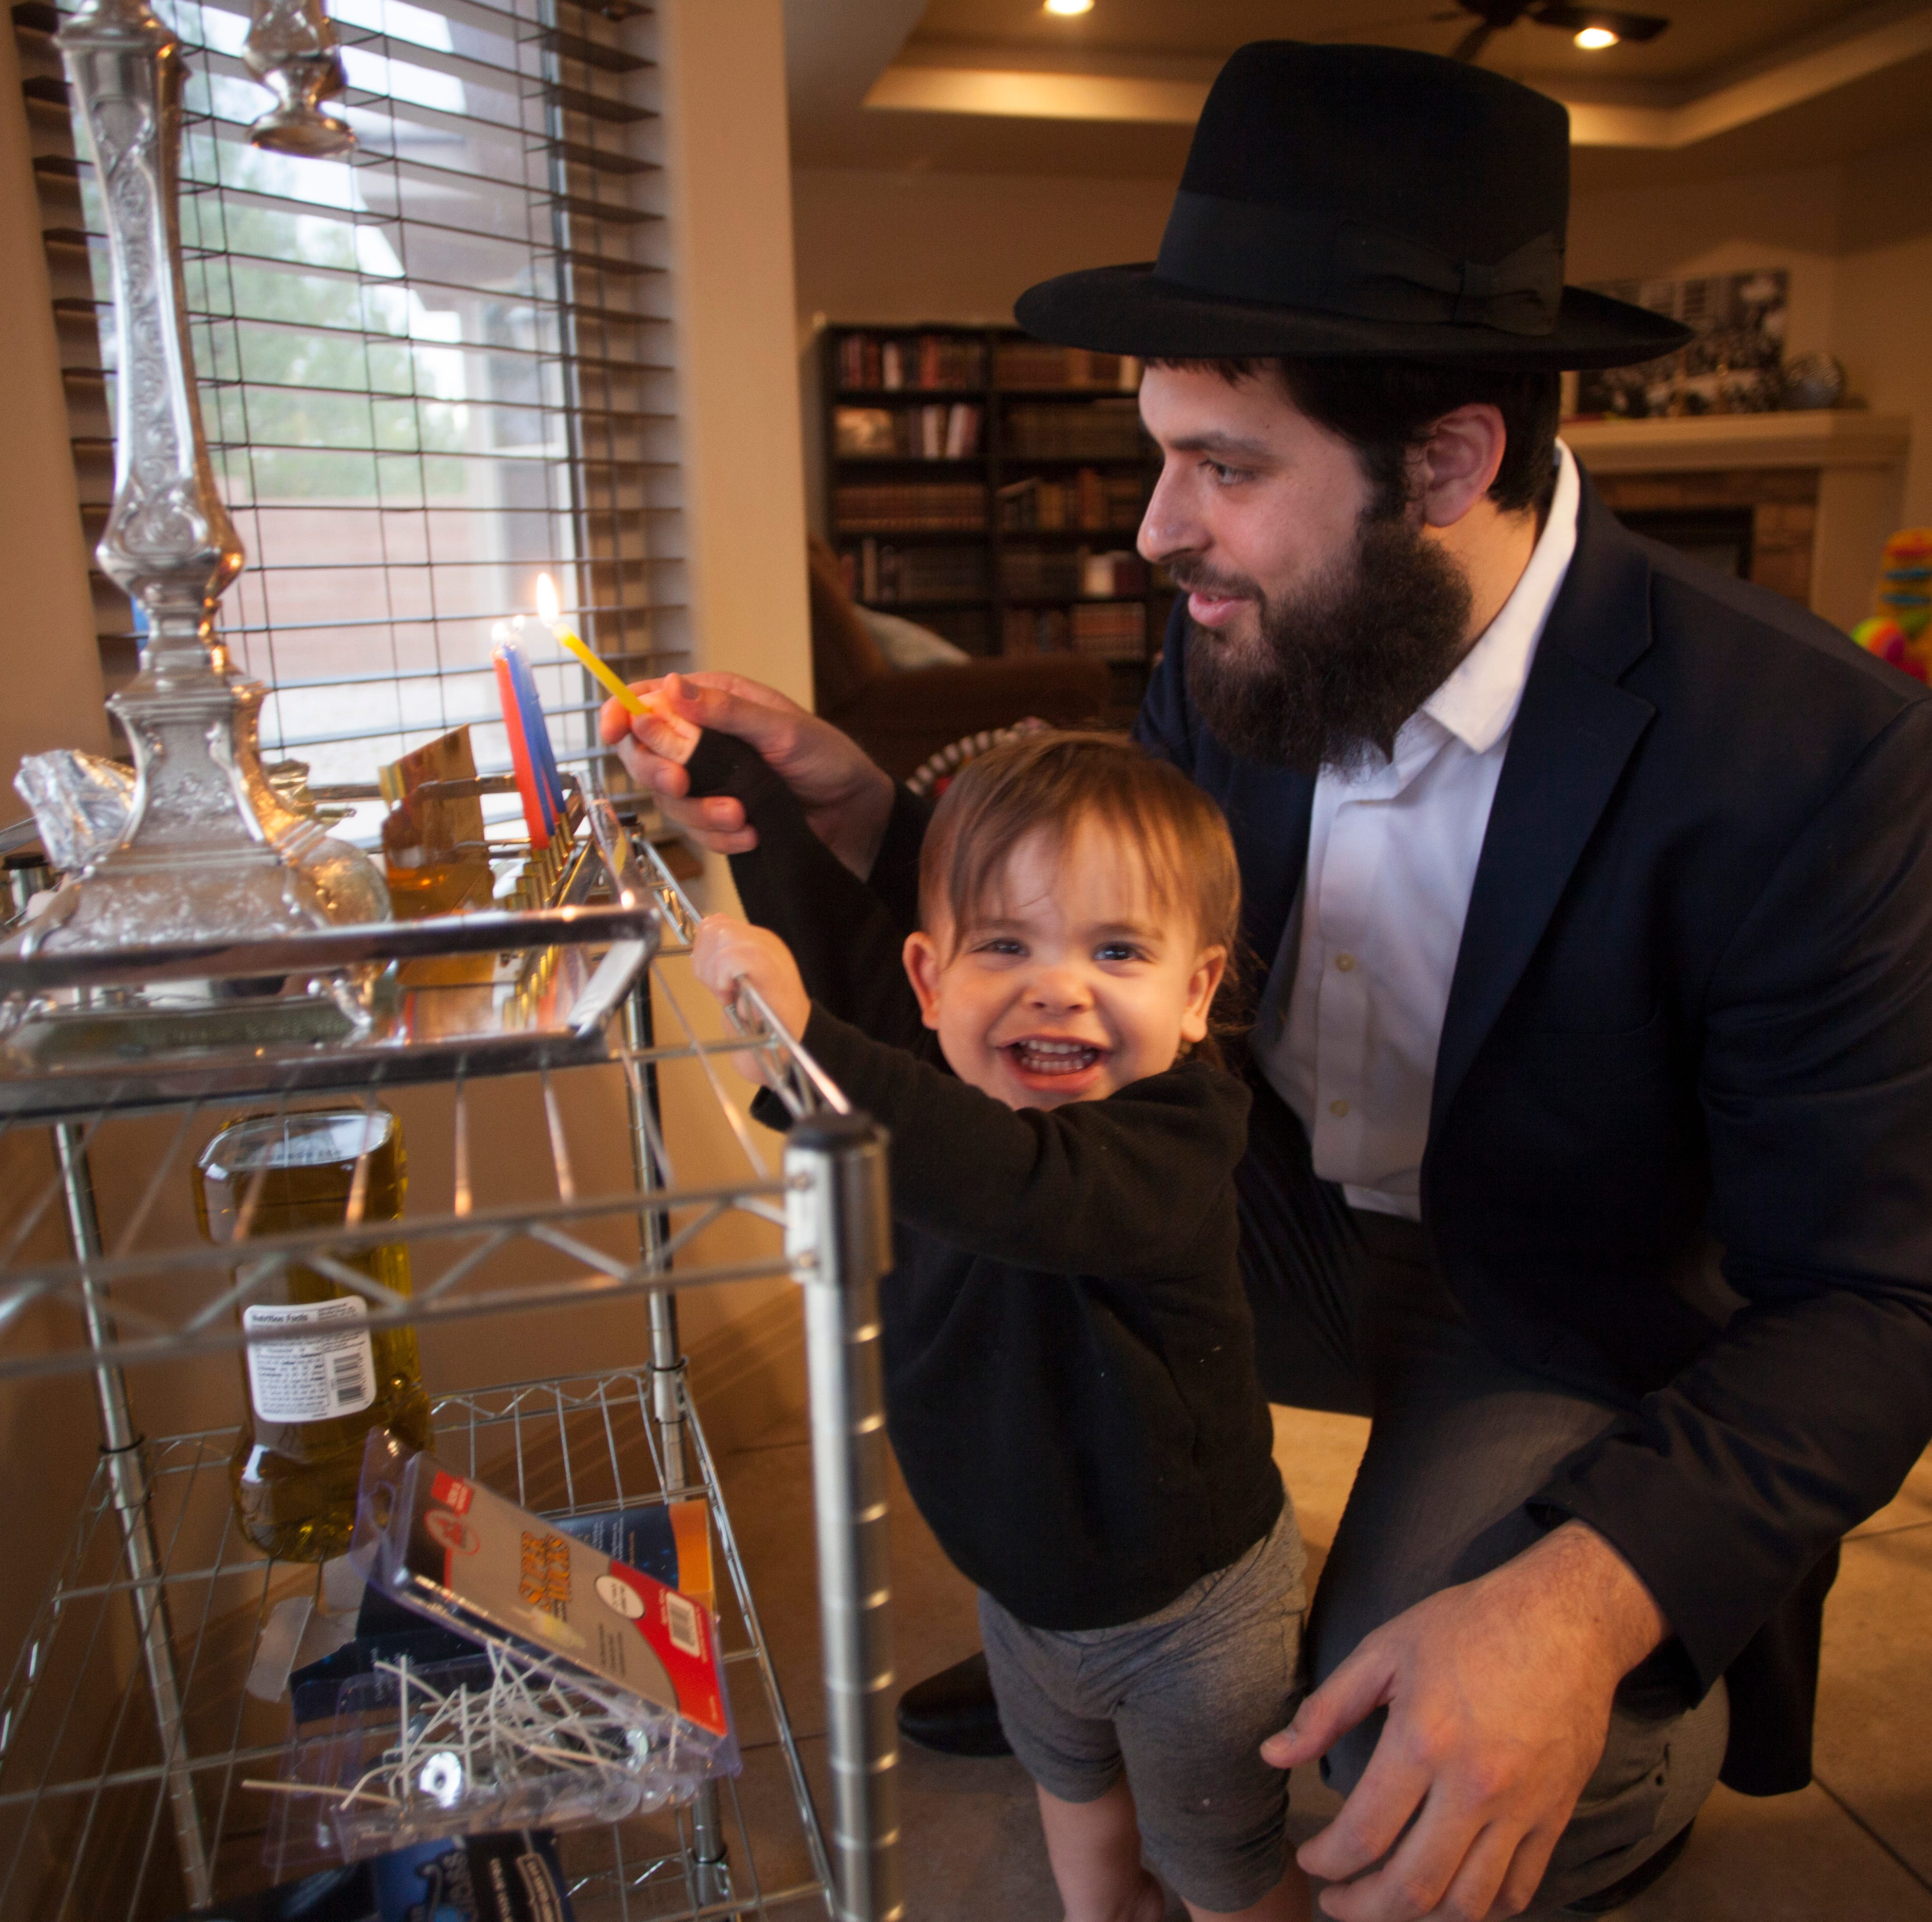 Celebrating Hanukkah in St. George: Jewish pride, time spent with family, gifts to charity